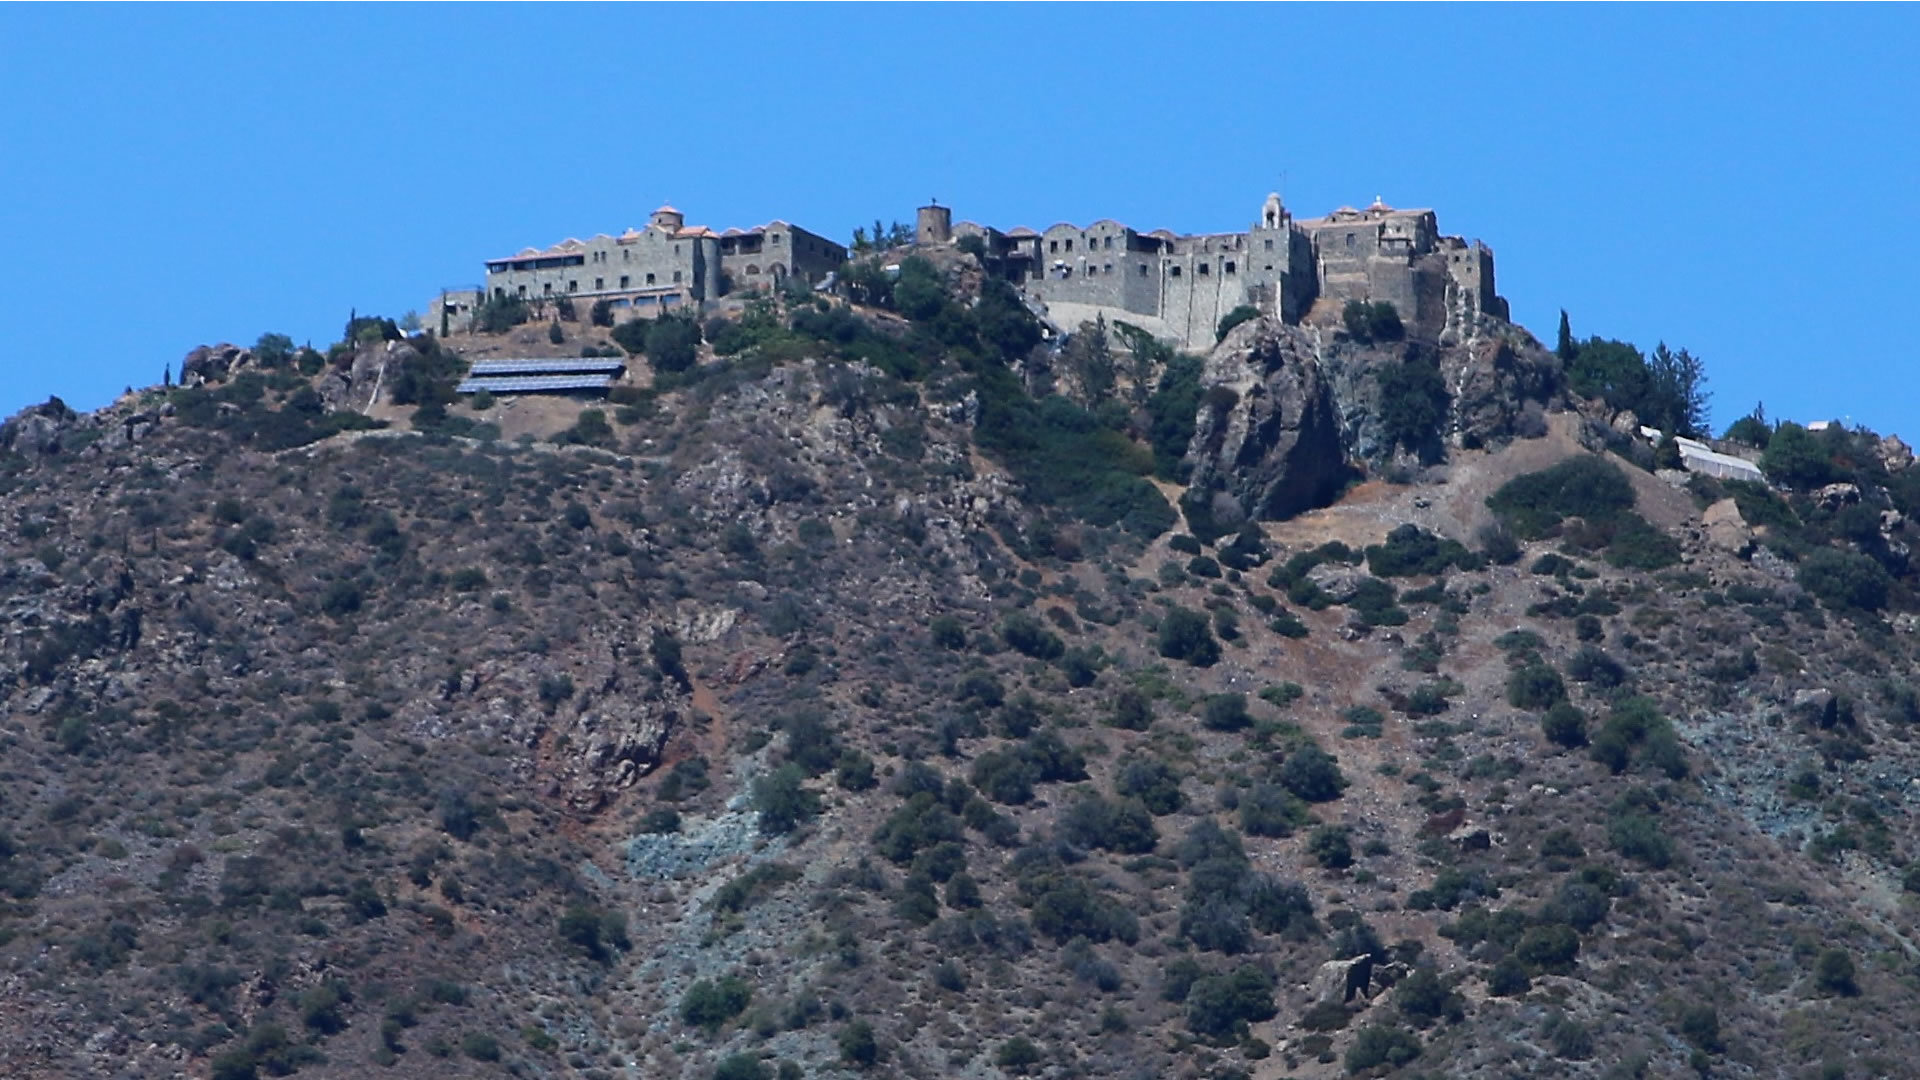 The monastry on the hill